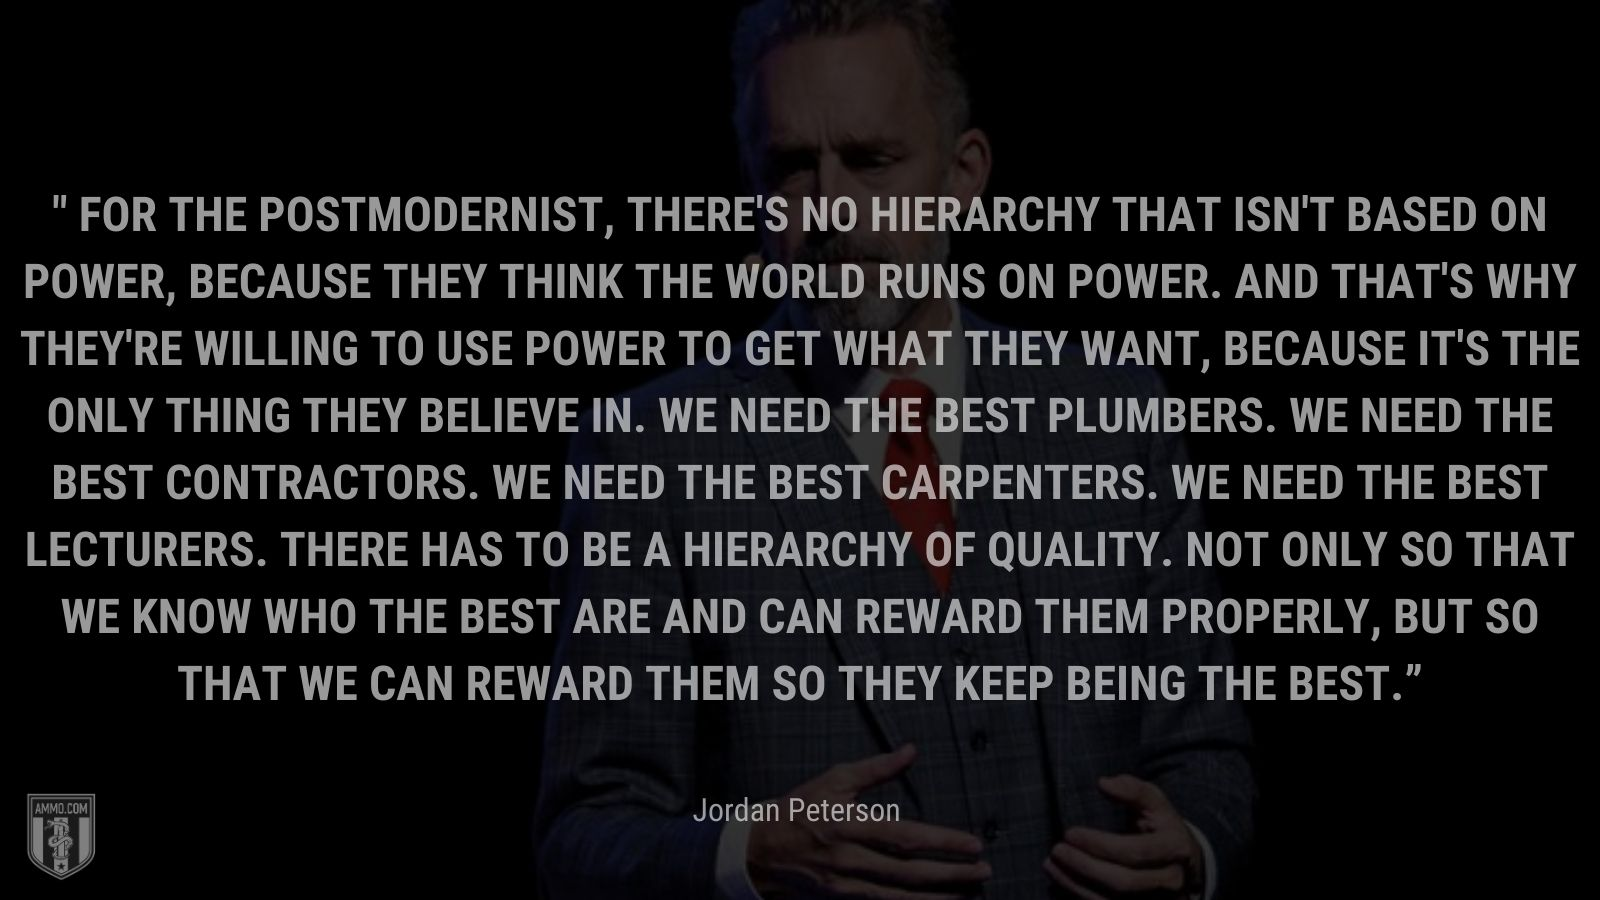 """""""For the postmodernist, there's no hierarchy that isn't based on power, because they think the world runs on power. And that's why they're willing to use power to get what they want, because it's the only thing they believe in. We need the best plumbers. We need the best contractors. We need the best carpenters. We need the best lecturers. There has to be a hierarchy of quality. Not only so that we know who the best are and can reward them properly, but so that we can reward them so they keep being the best."""" - Jordan Peterson"""